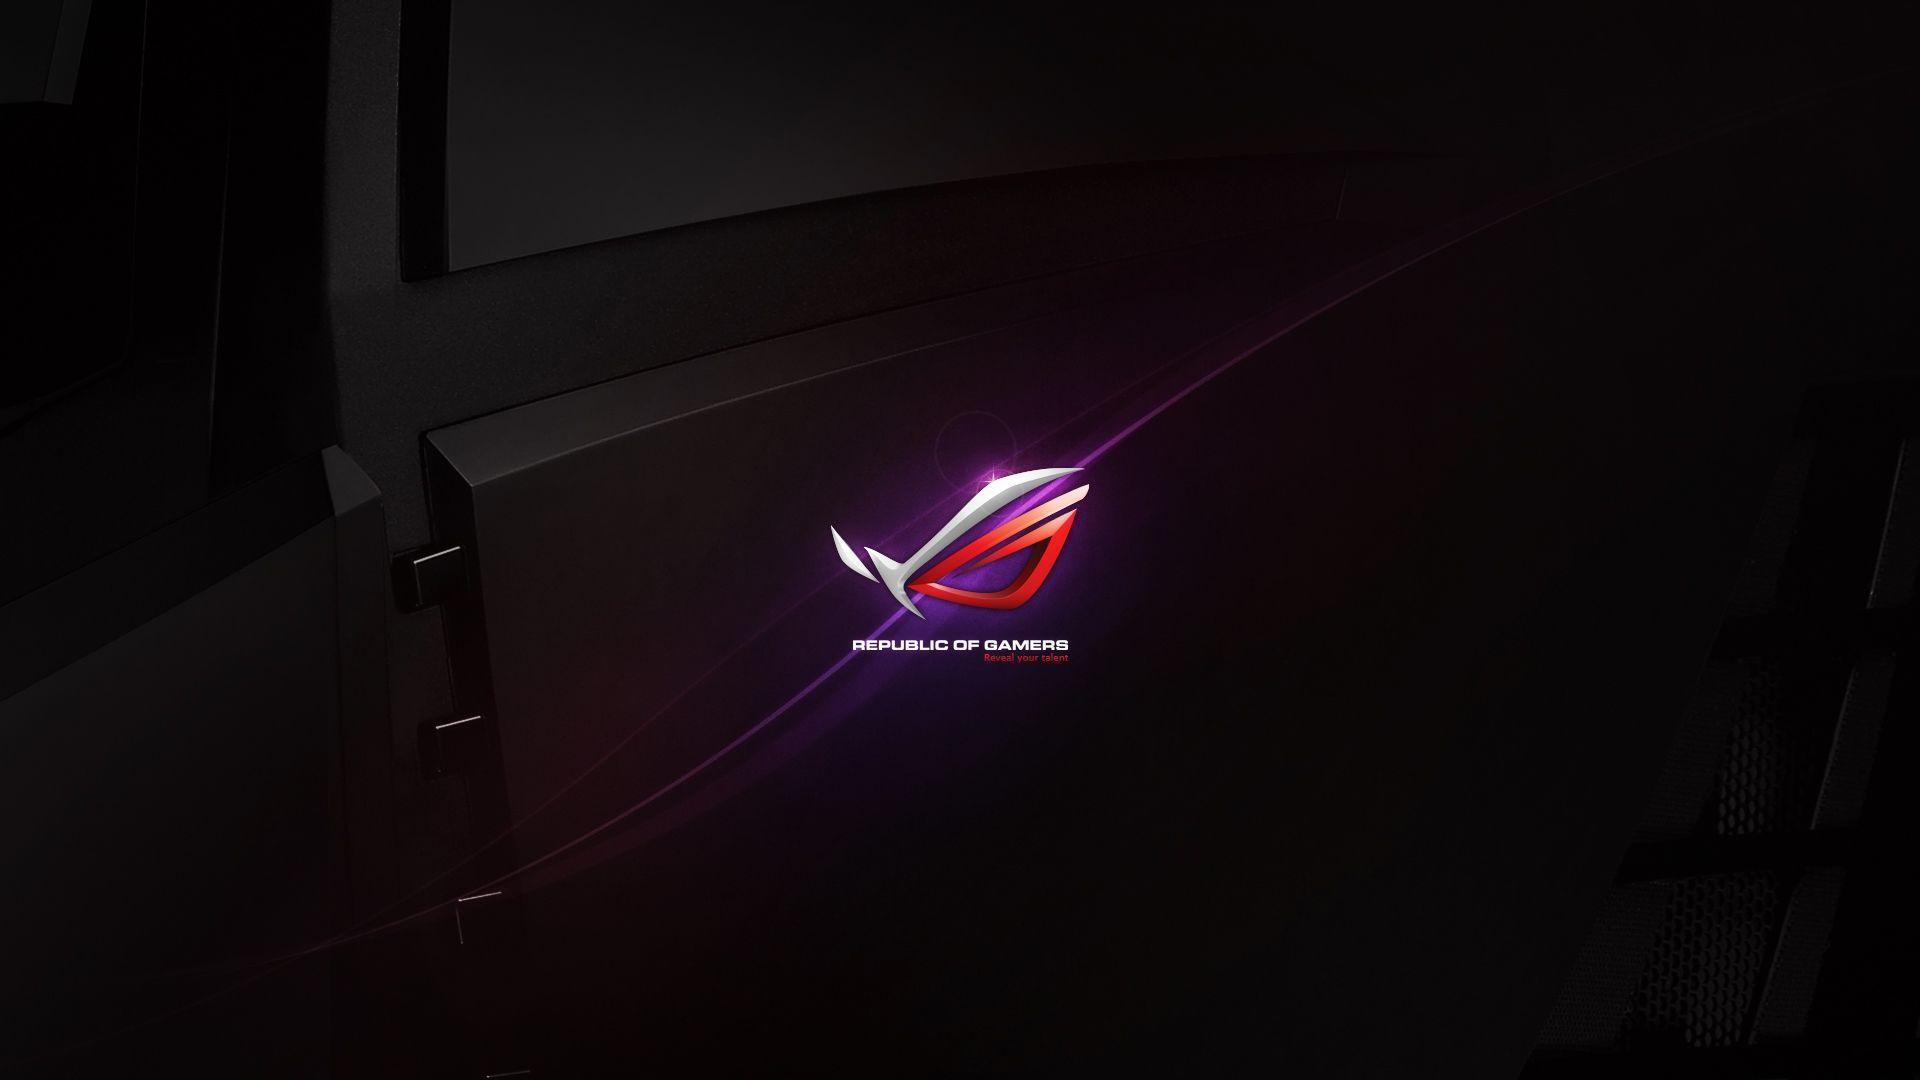 Asus Republic Of Gamers Wallpapers Wallpaper Cave